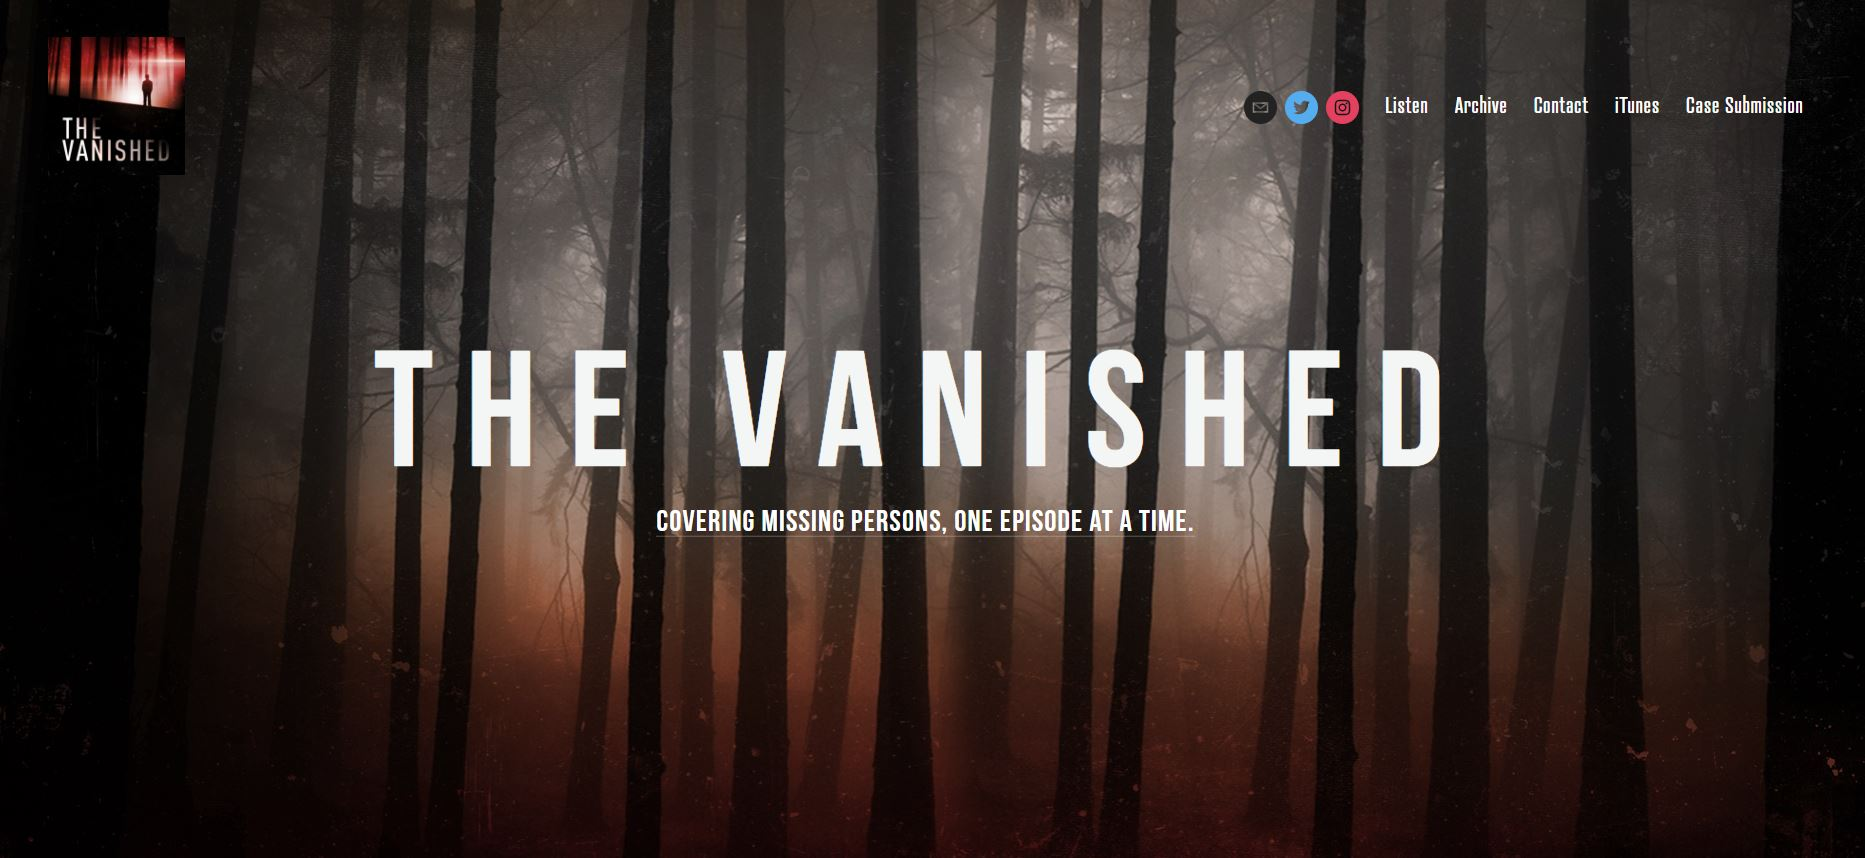 the vanished podcast.JPG